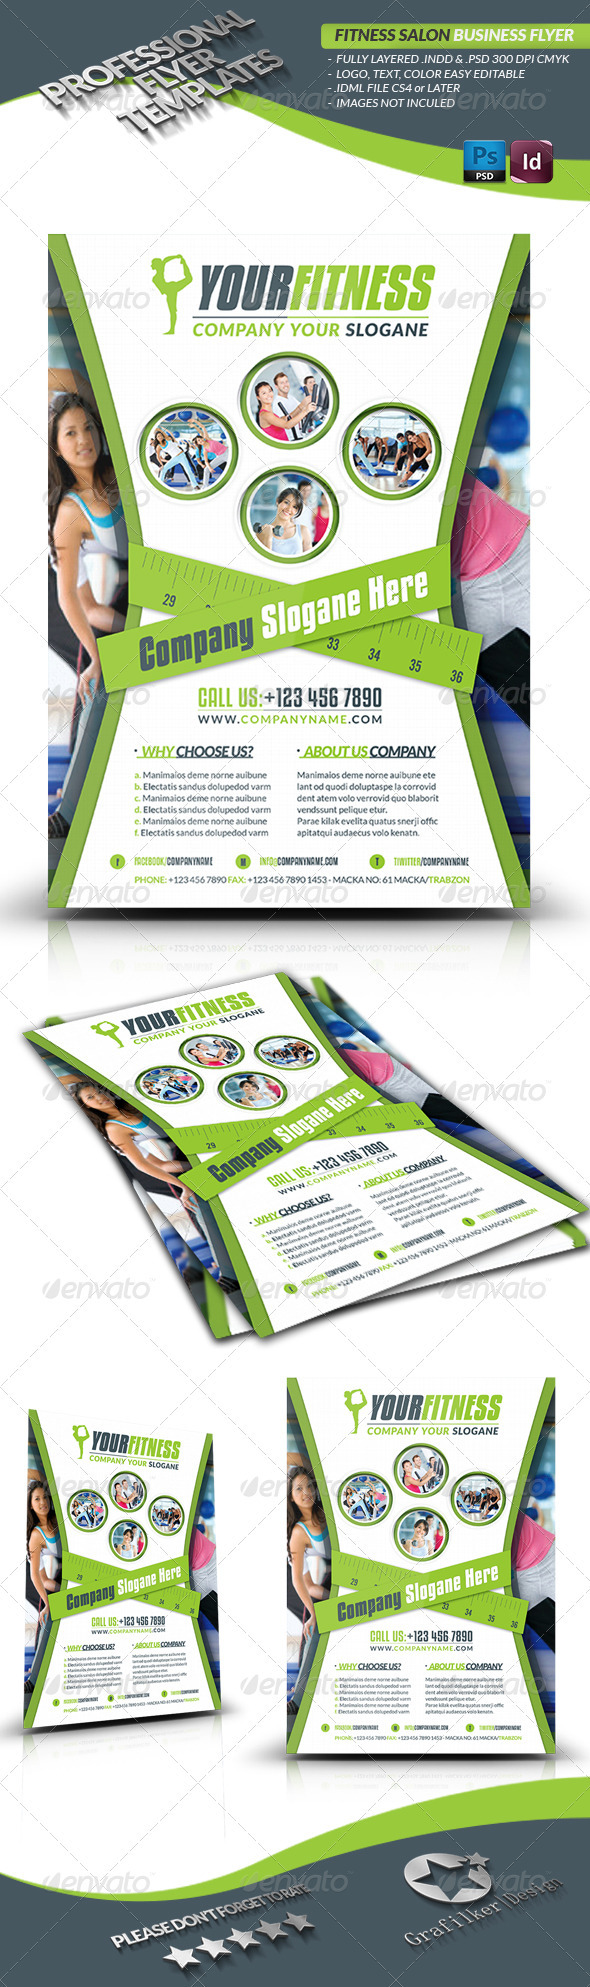 GraphicRiver Fitness Salon Business Flyer 3233457